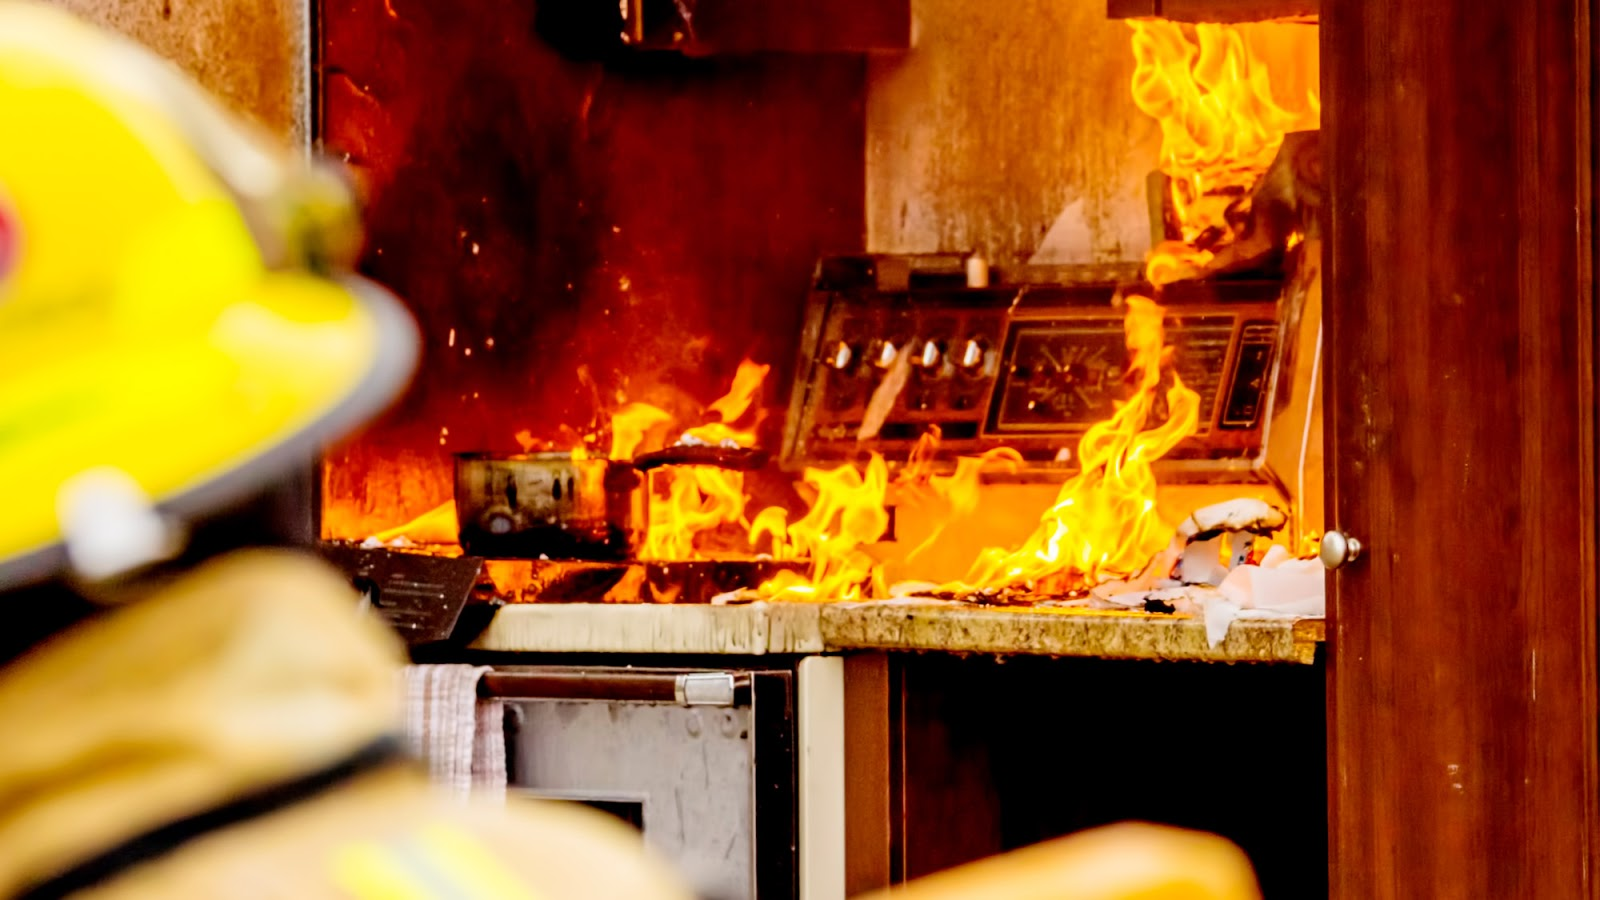 Electrical Appliances On Fire